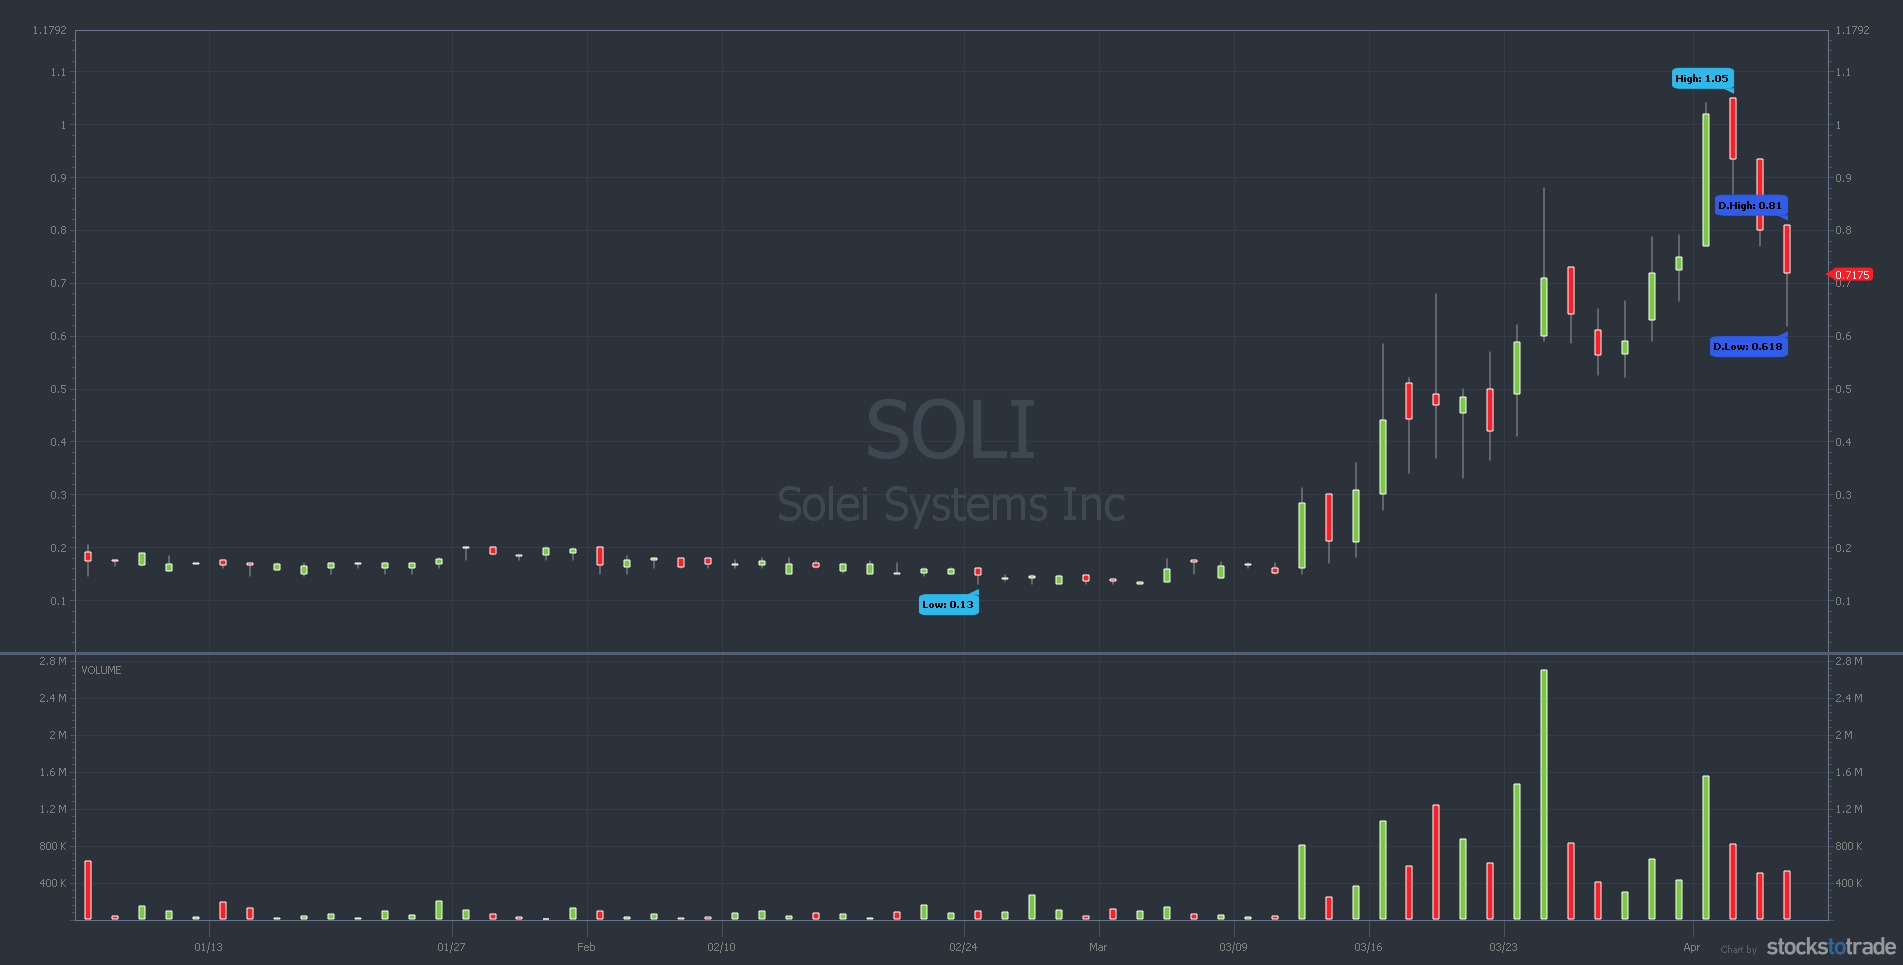 SOLI 3 month chart